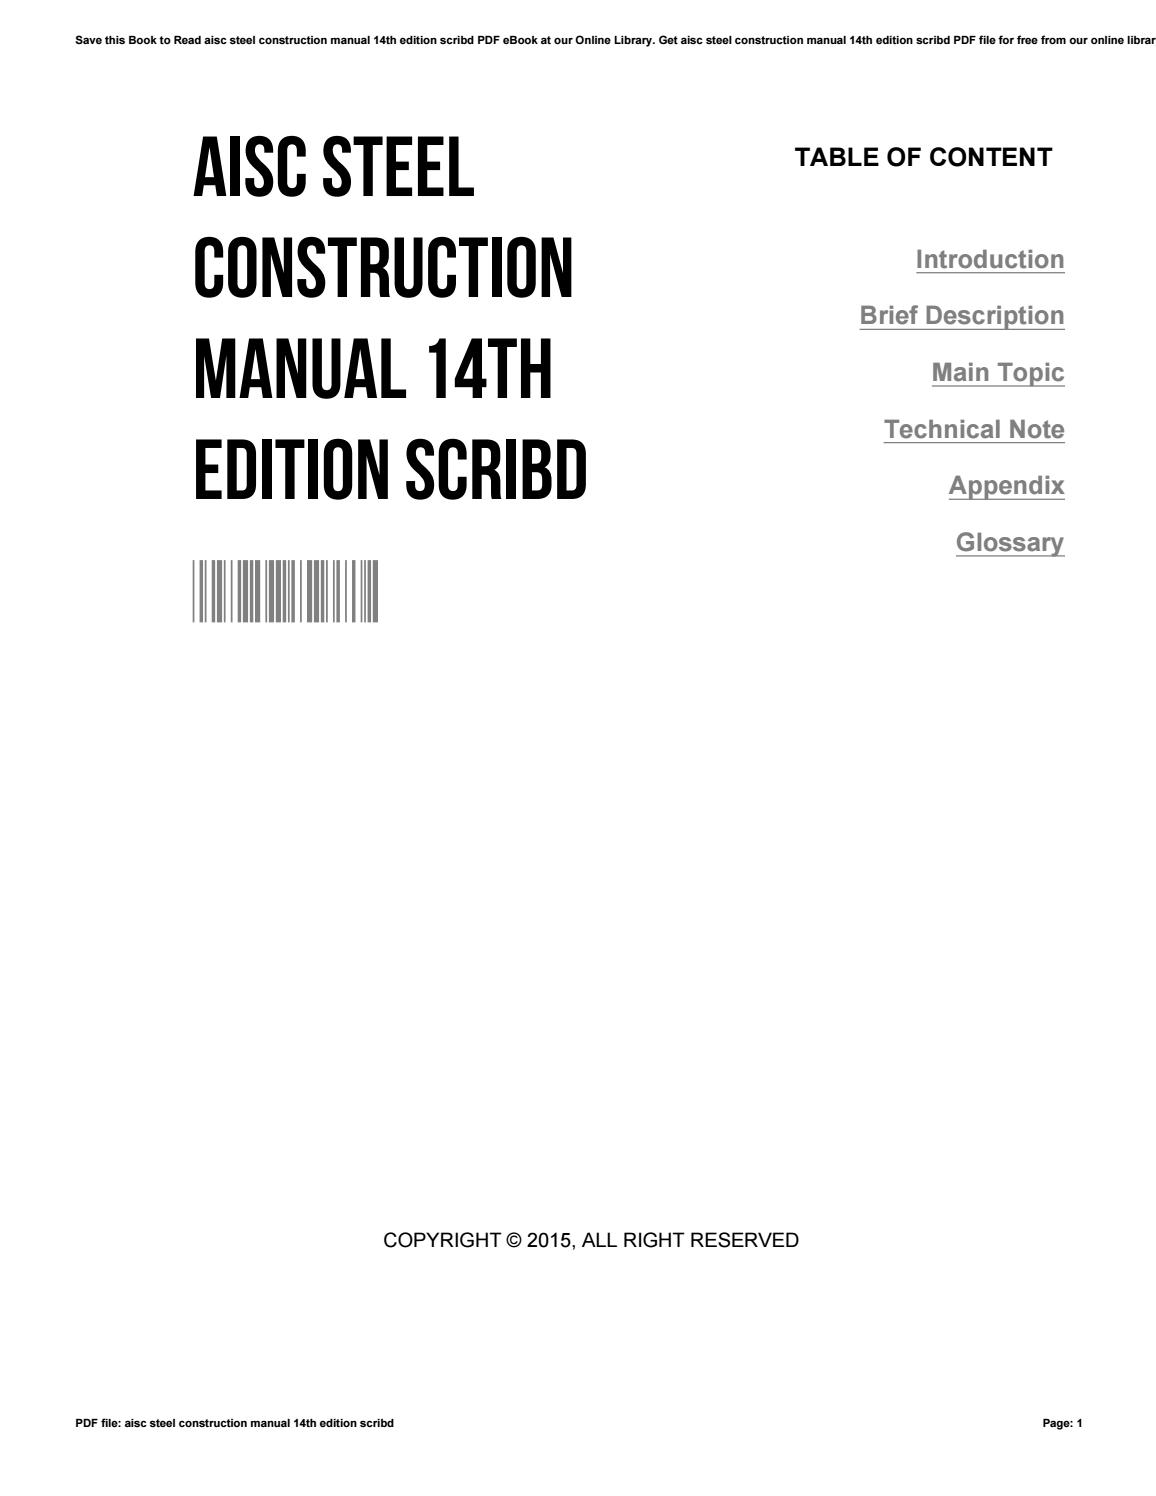 Aisc Steel Construction Manual 14th Edition Pdf Scribd